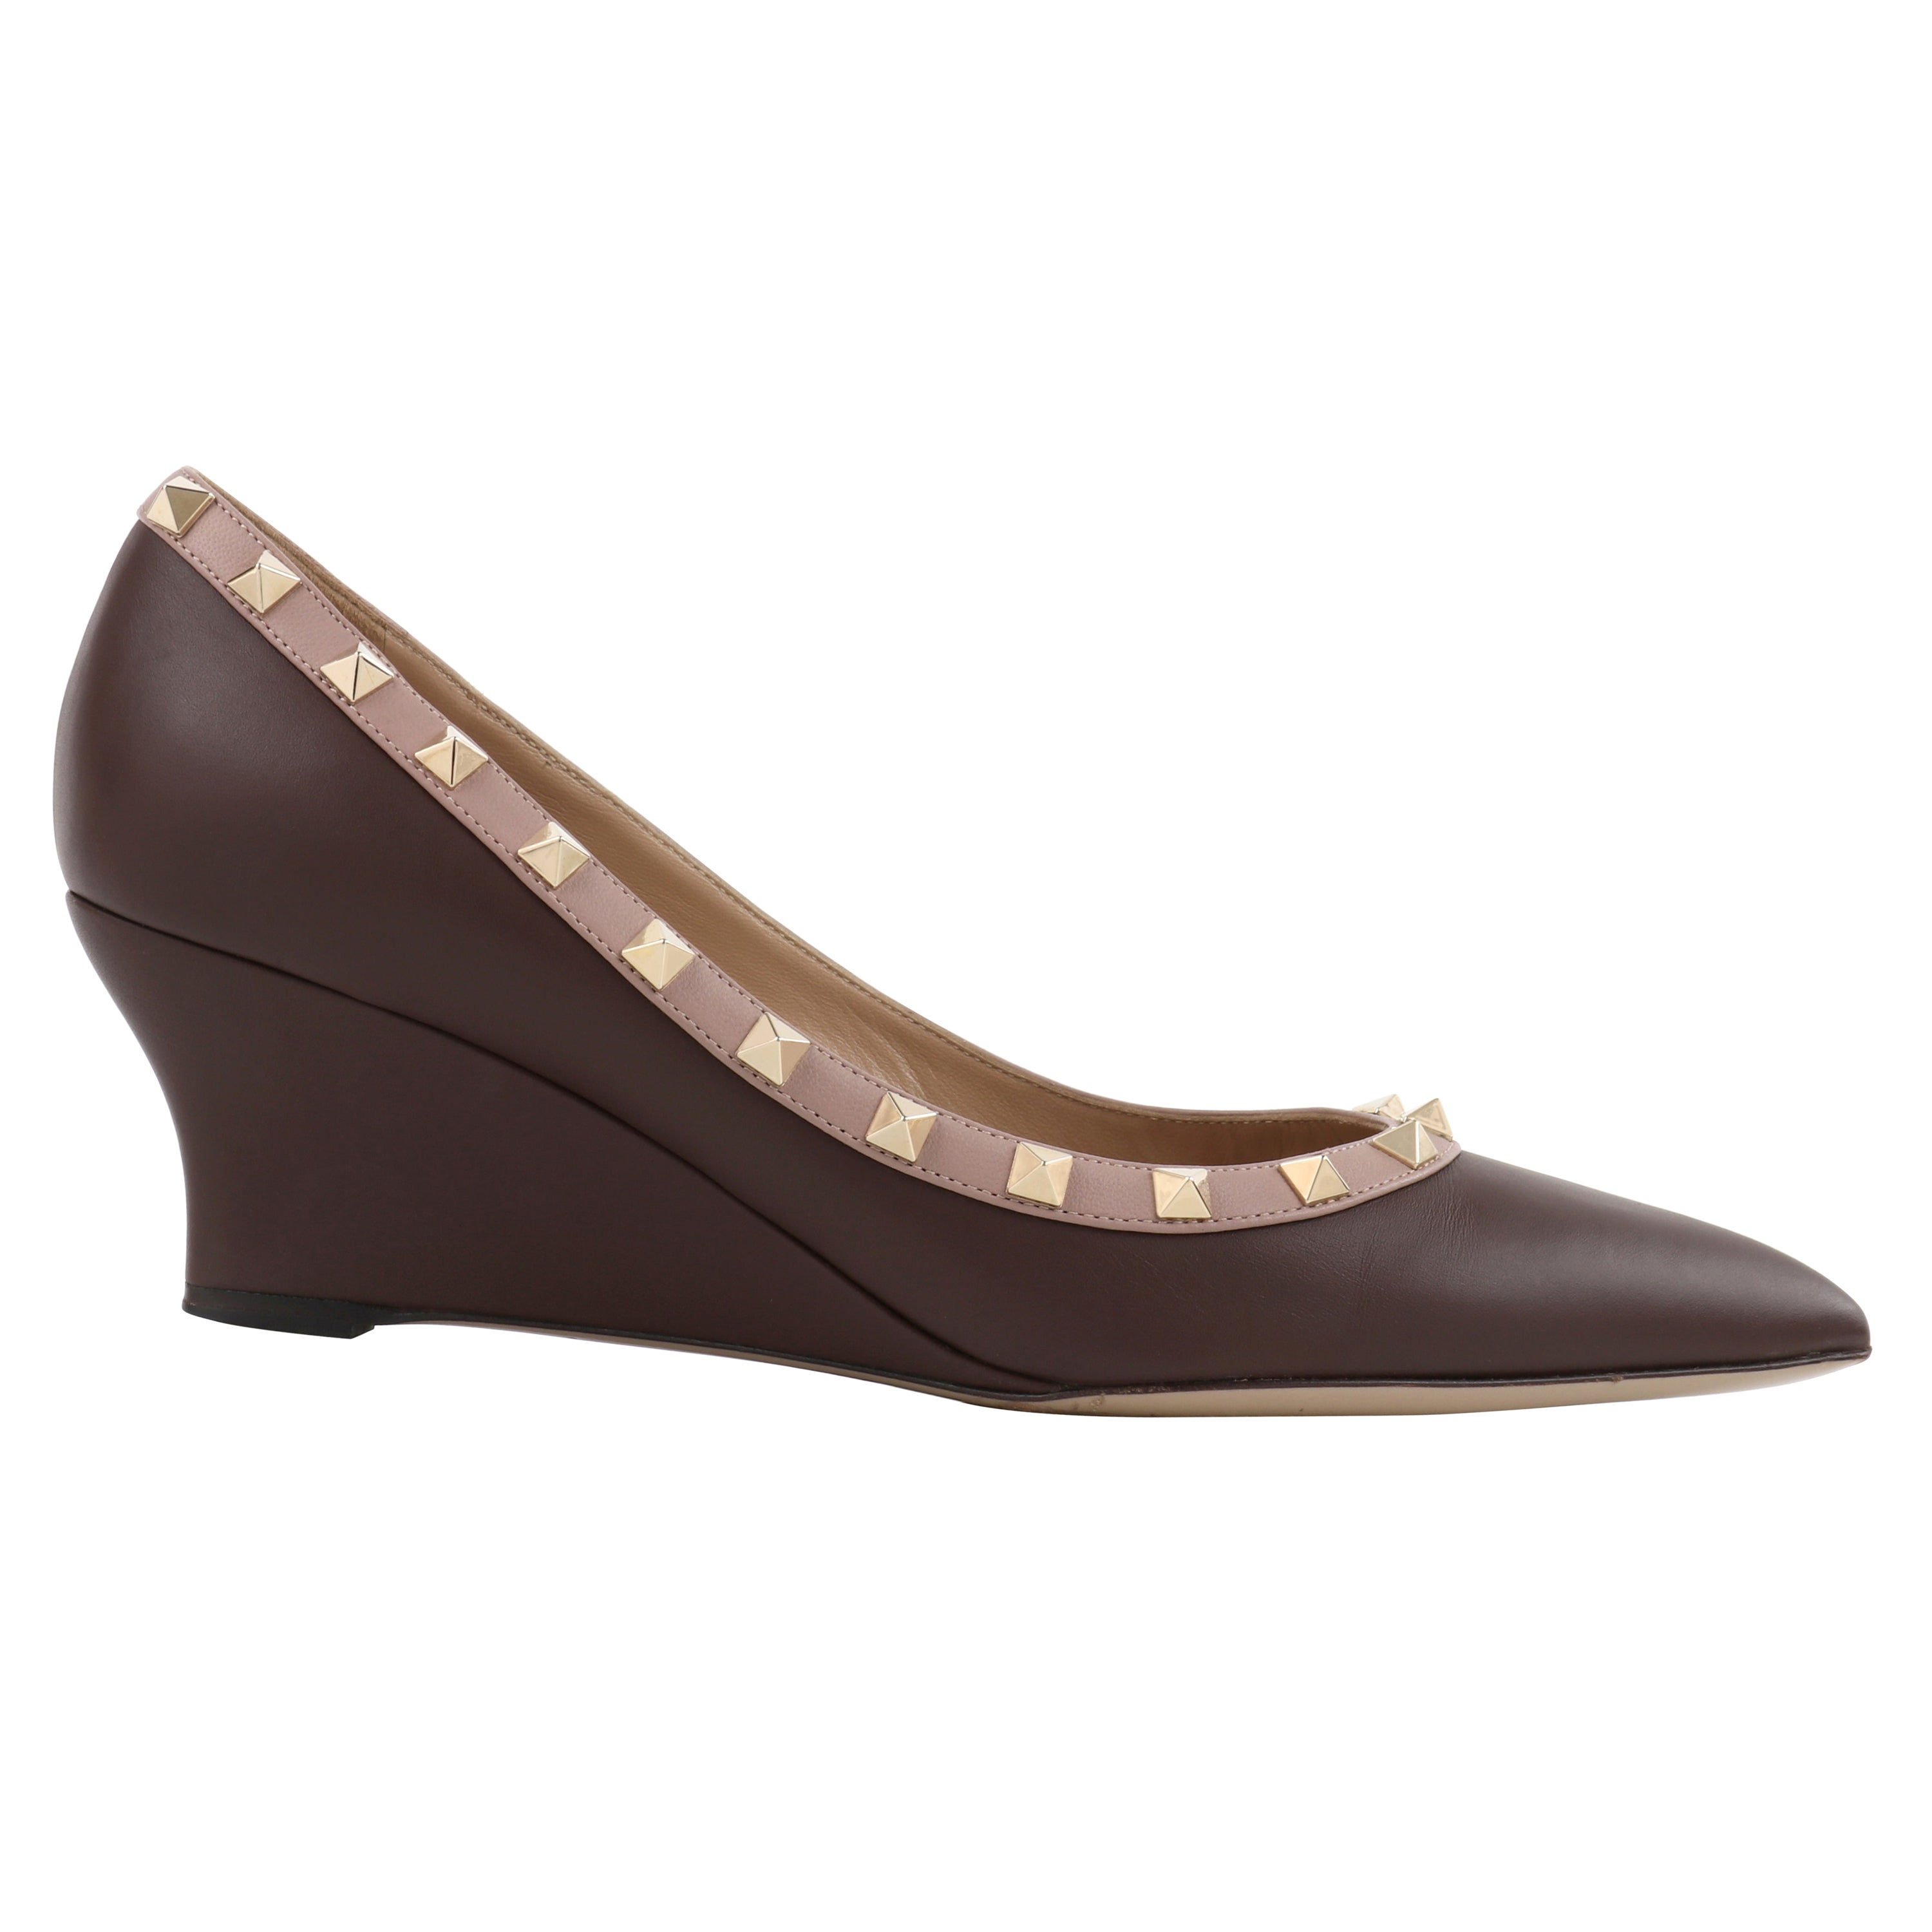 "VALENTINO ""Rockstud"" Cacao Brown Napa Leather Studded Pointed Toe Wedge Heels"